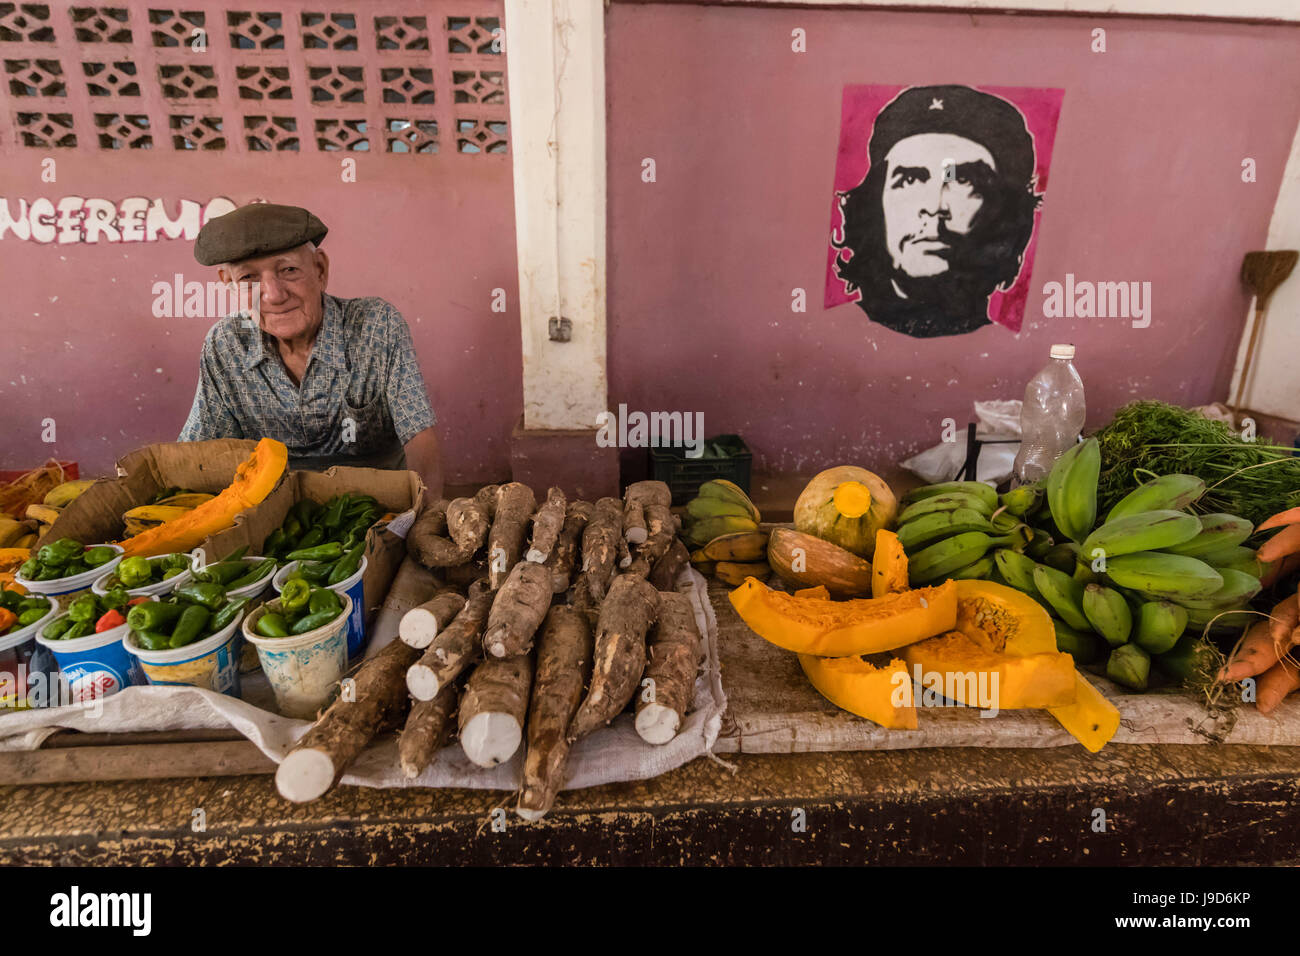 Fruit and vegetables for sale by private vendor at the Mercado Industrial in Cienfuegos, Cuba, West Indies, Caribbean - Stock Image